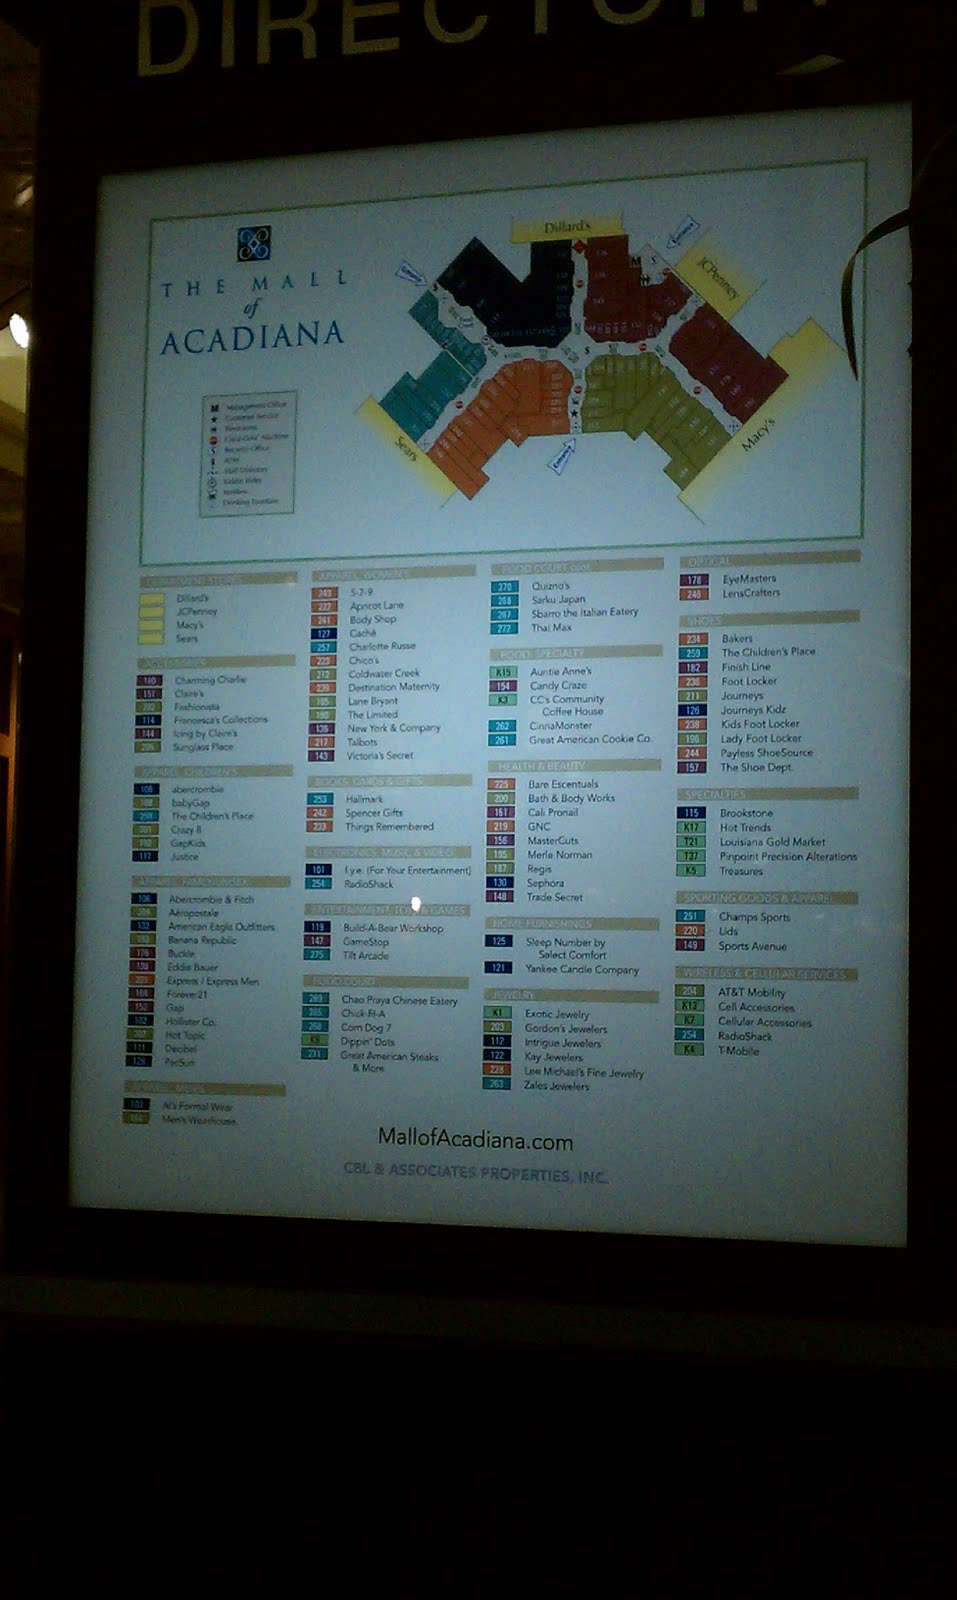 Louisiana and Texas Southern Malls and Retail: The Mall of Acadiana ...